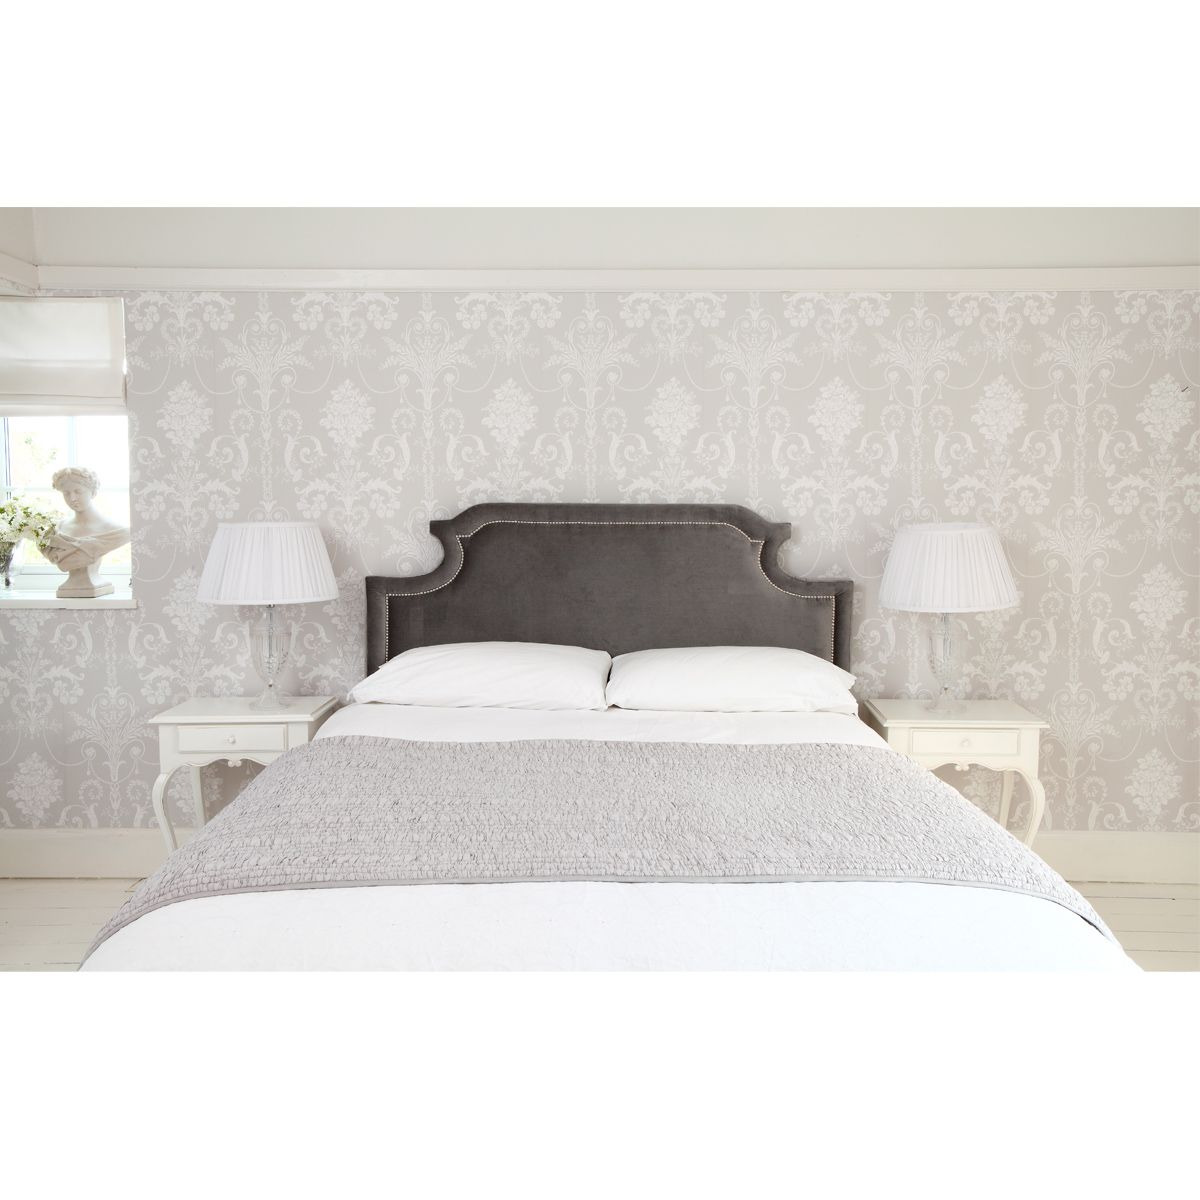 layla headboard in sumptuous grey for that sophisticated romantic  - layla headboard in sumptuous grey for that sophisticated romantic look